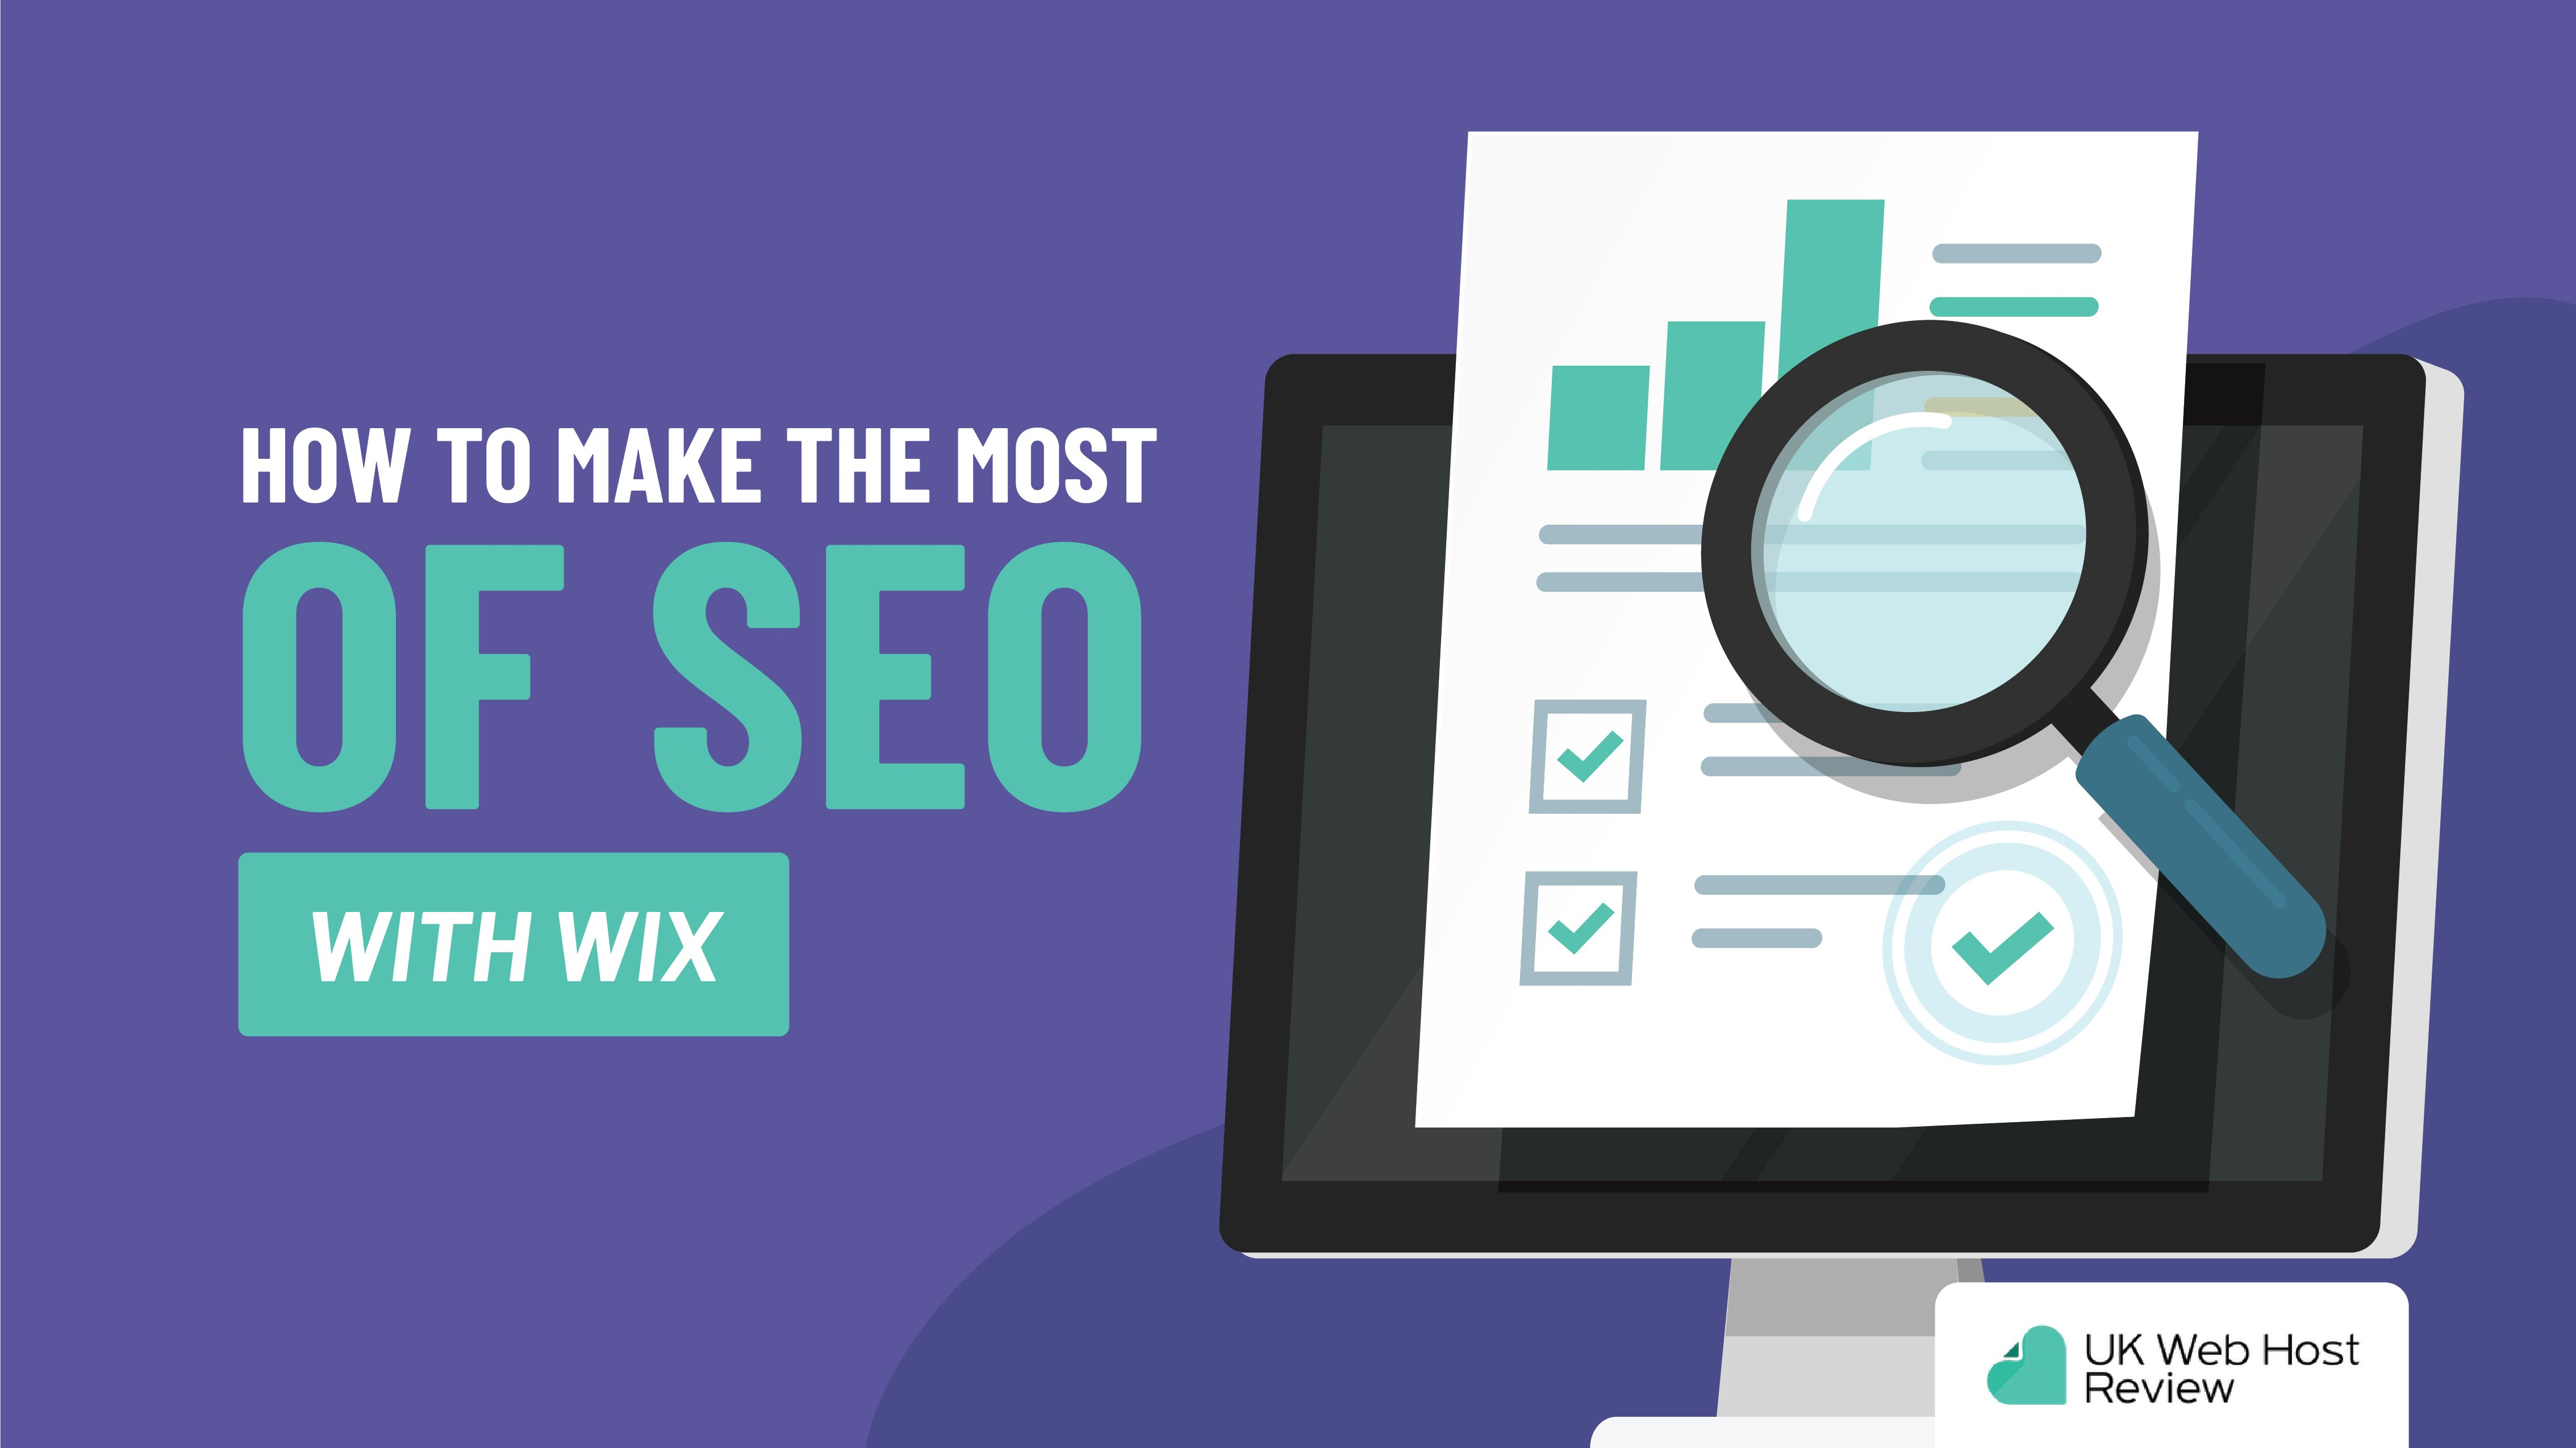 How to Make the Most of SEO with Wix